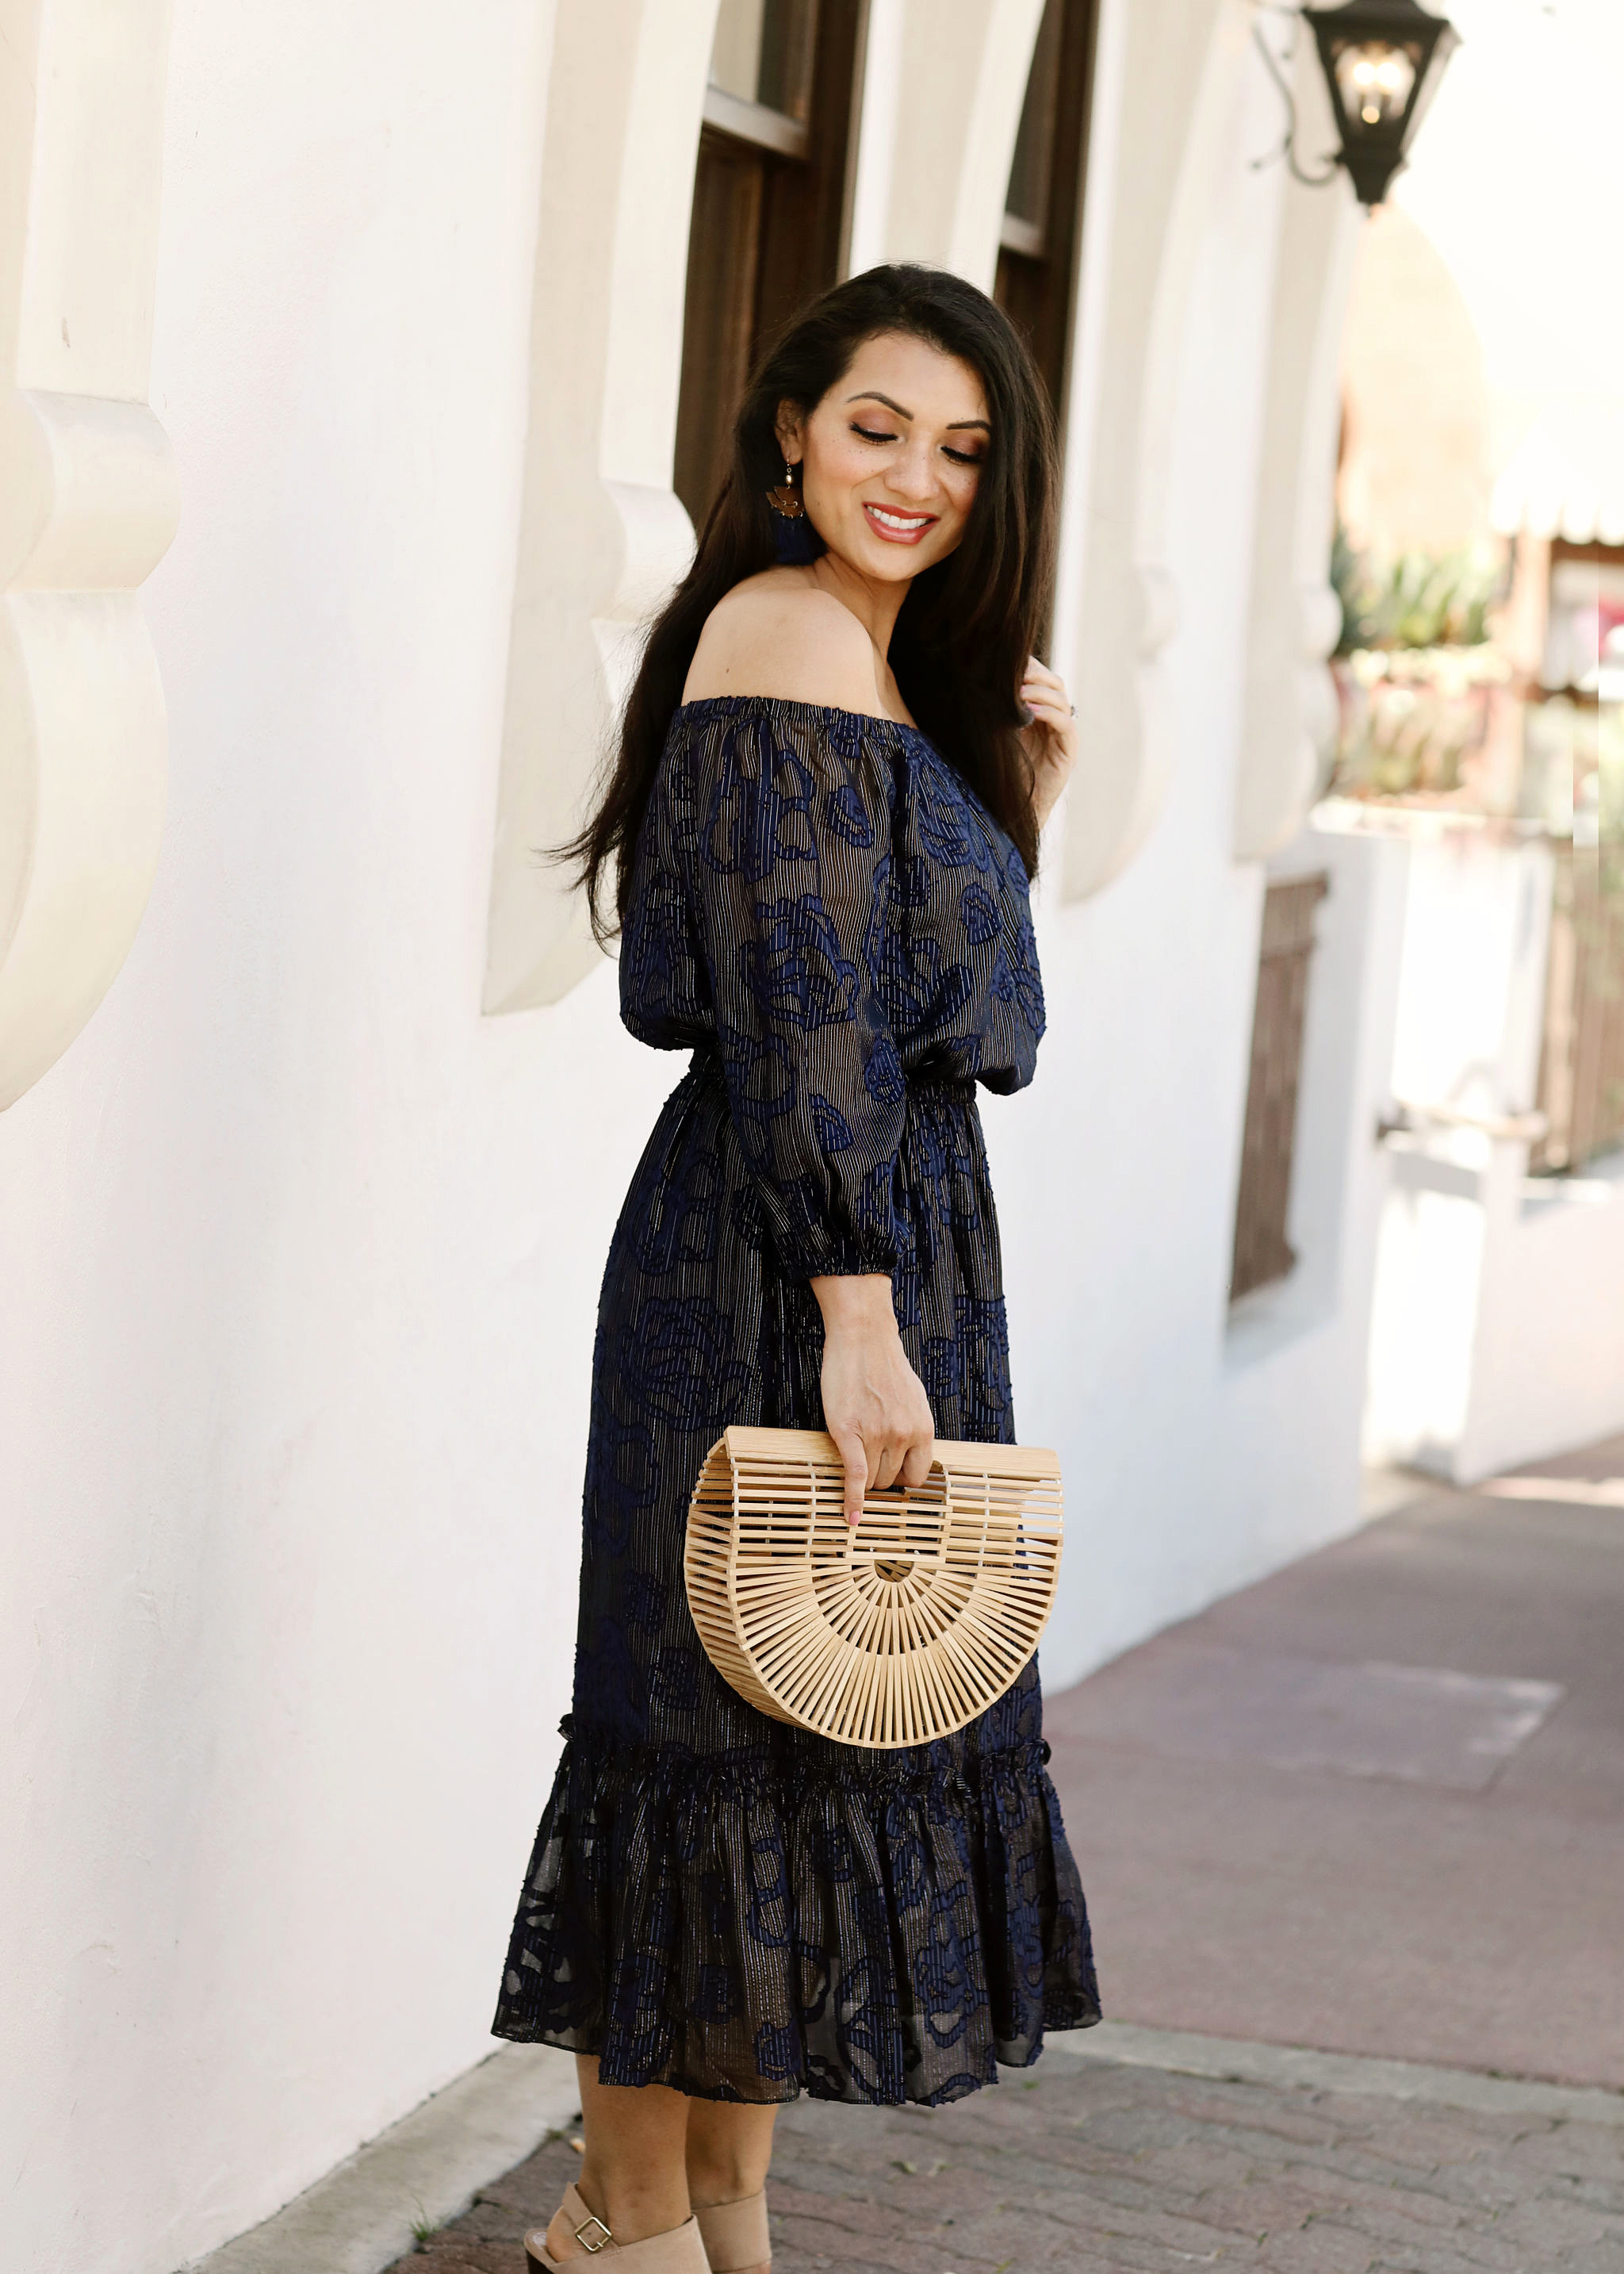 Need the perfect wedding guest dress this summer? Orange County Blogger Debbie Savage is sharing the perfect summer wedding guest dresses here!